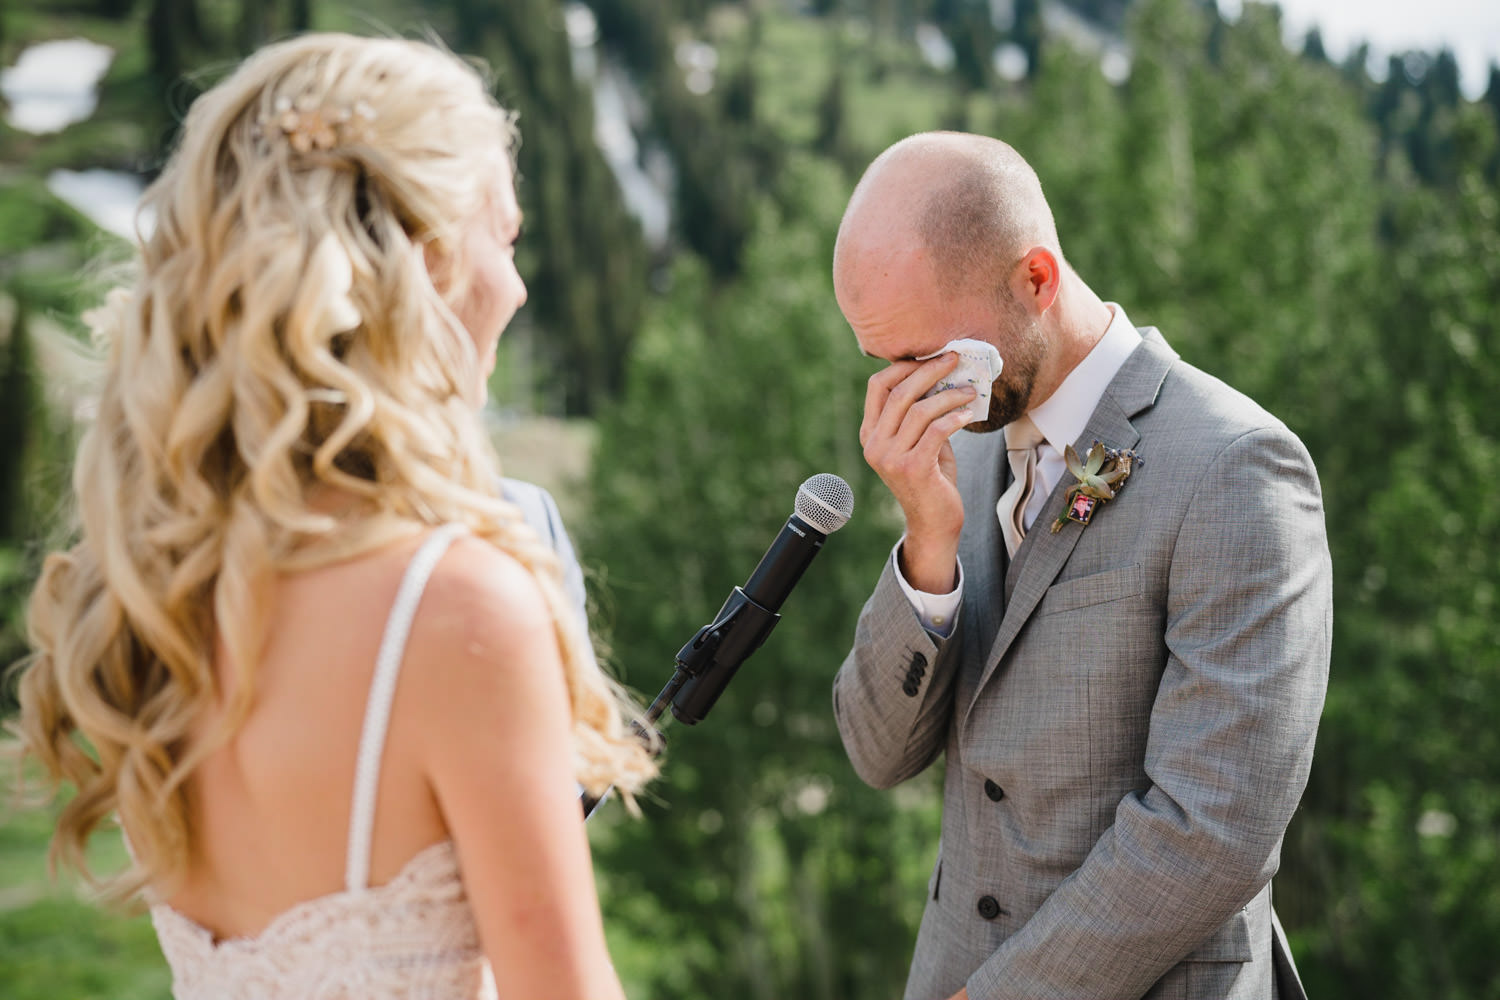 Alta Lodge wedding groom wiping tears during the ceremony photo